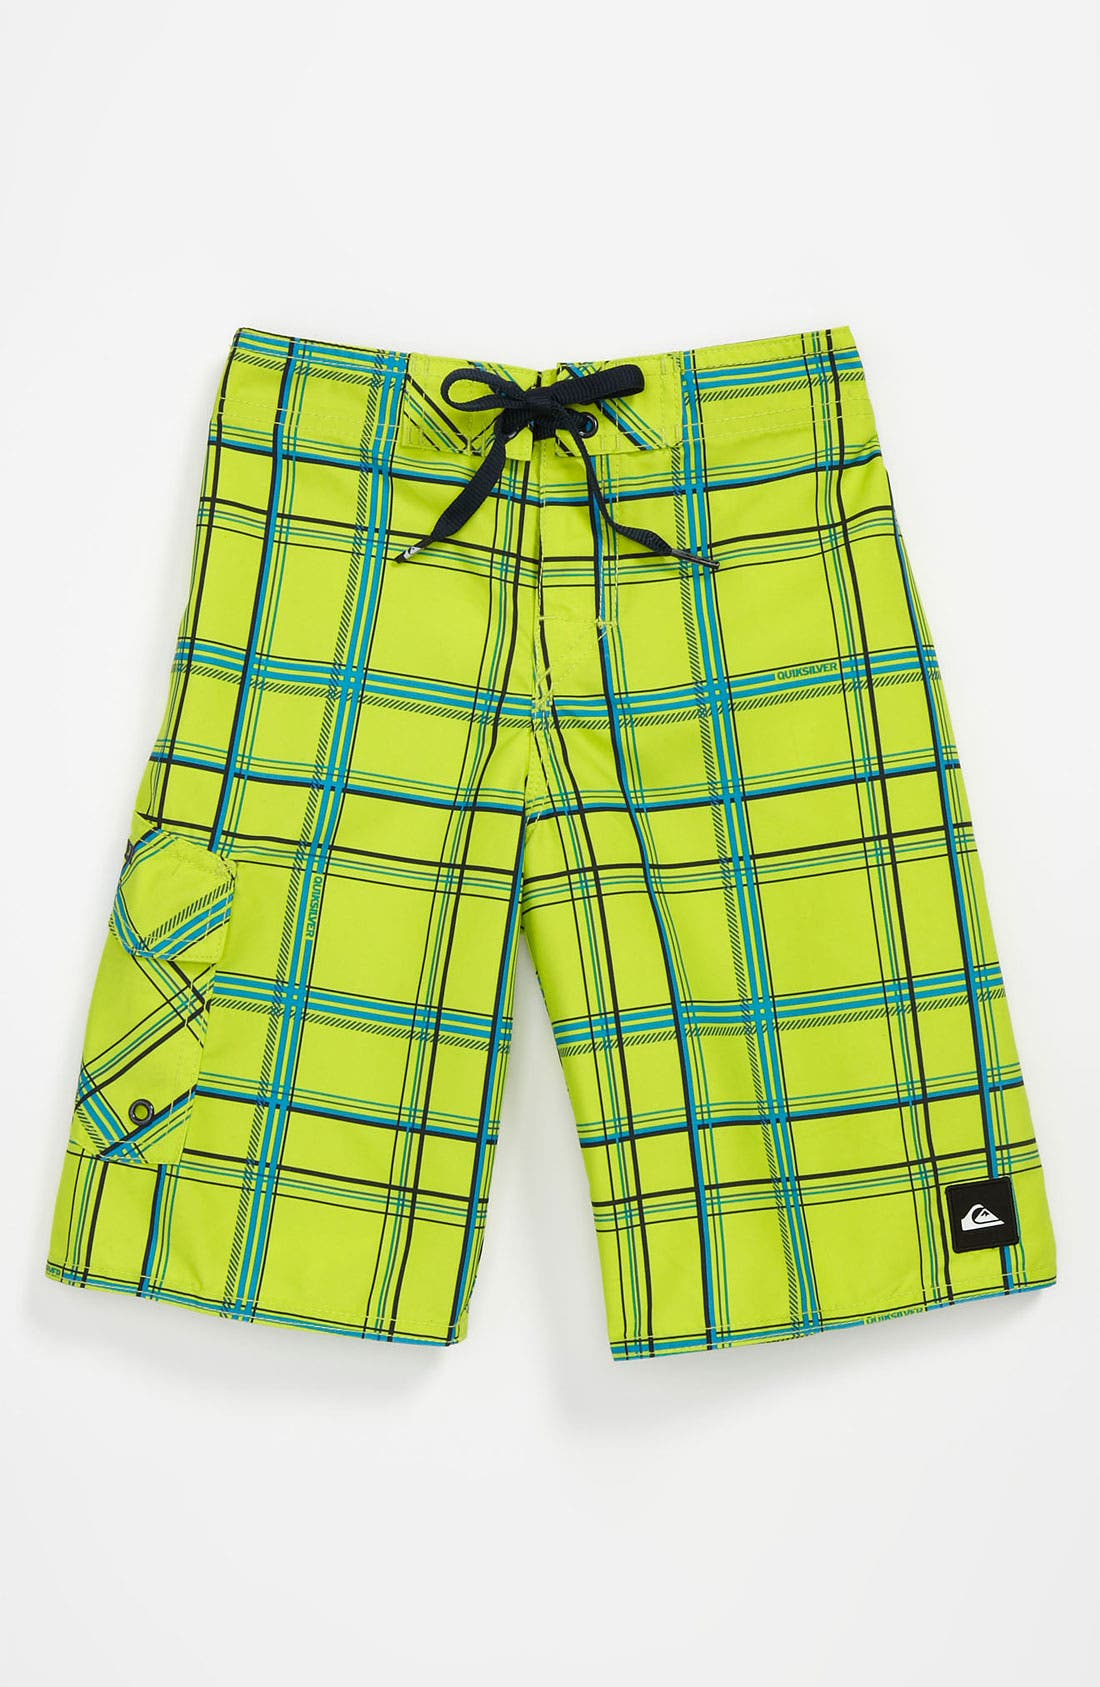 Alternate Image 1 Selected - Quiksilver 'Paid In Full' Board Shorts (Little Boys)